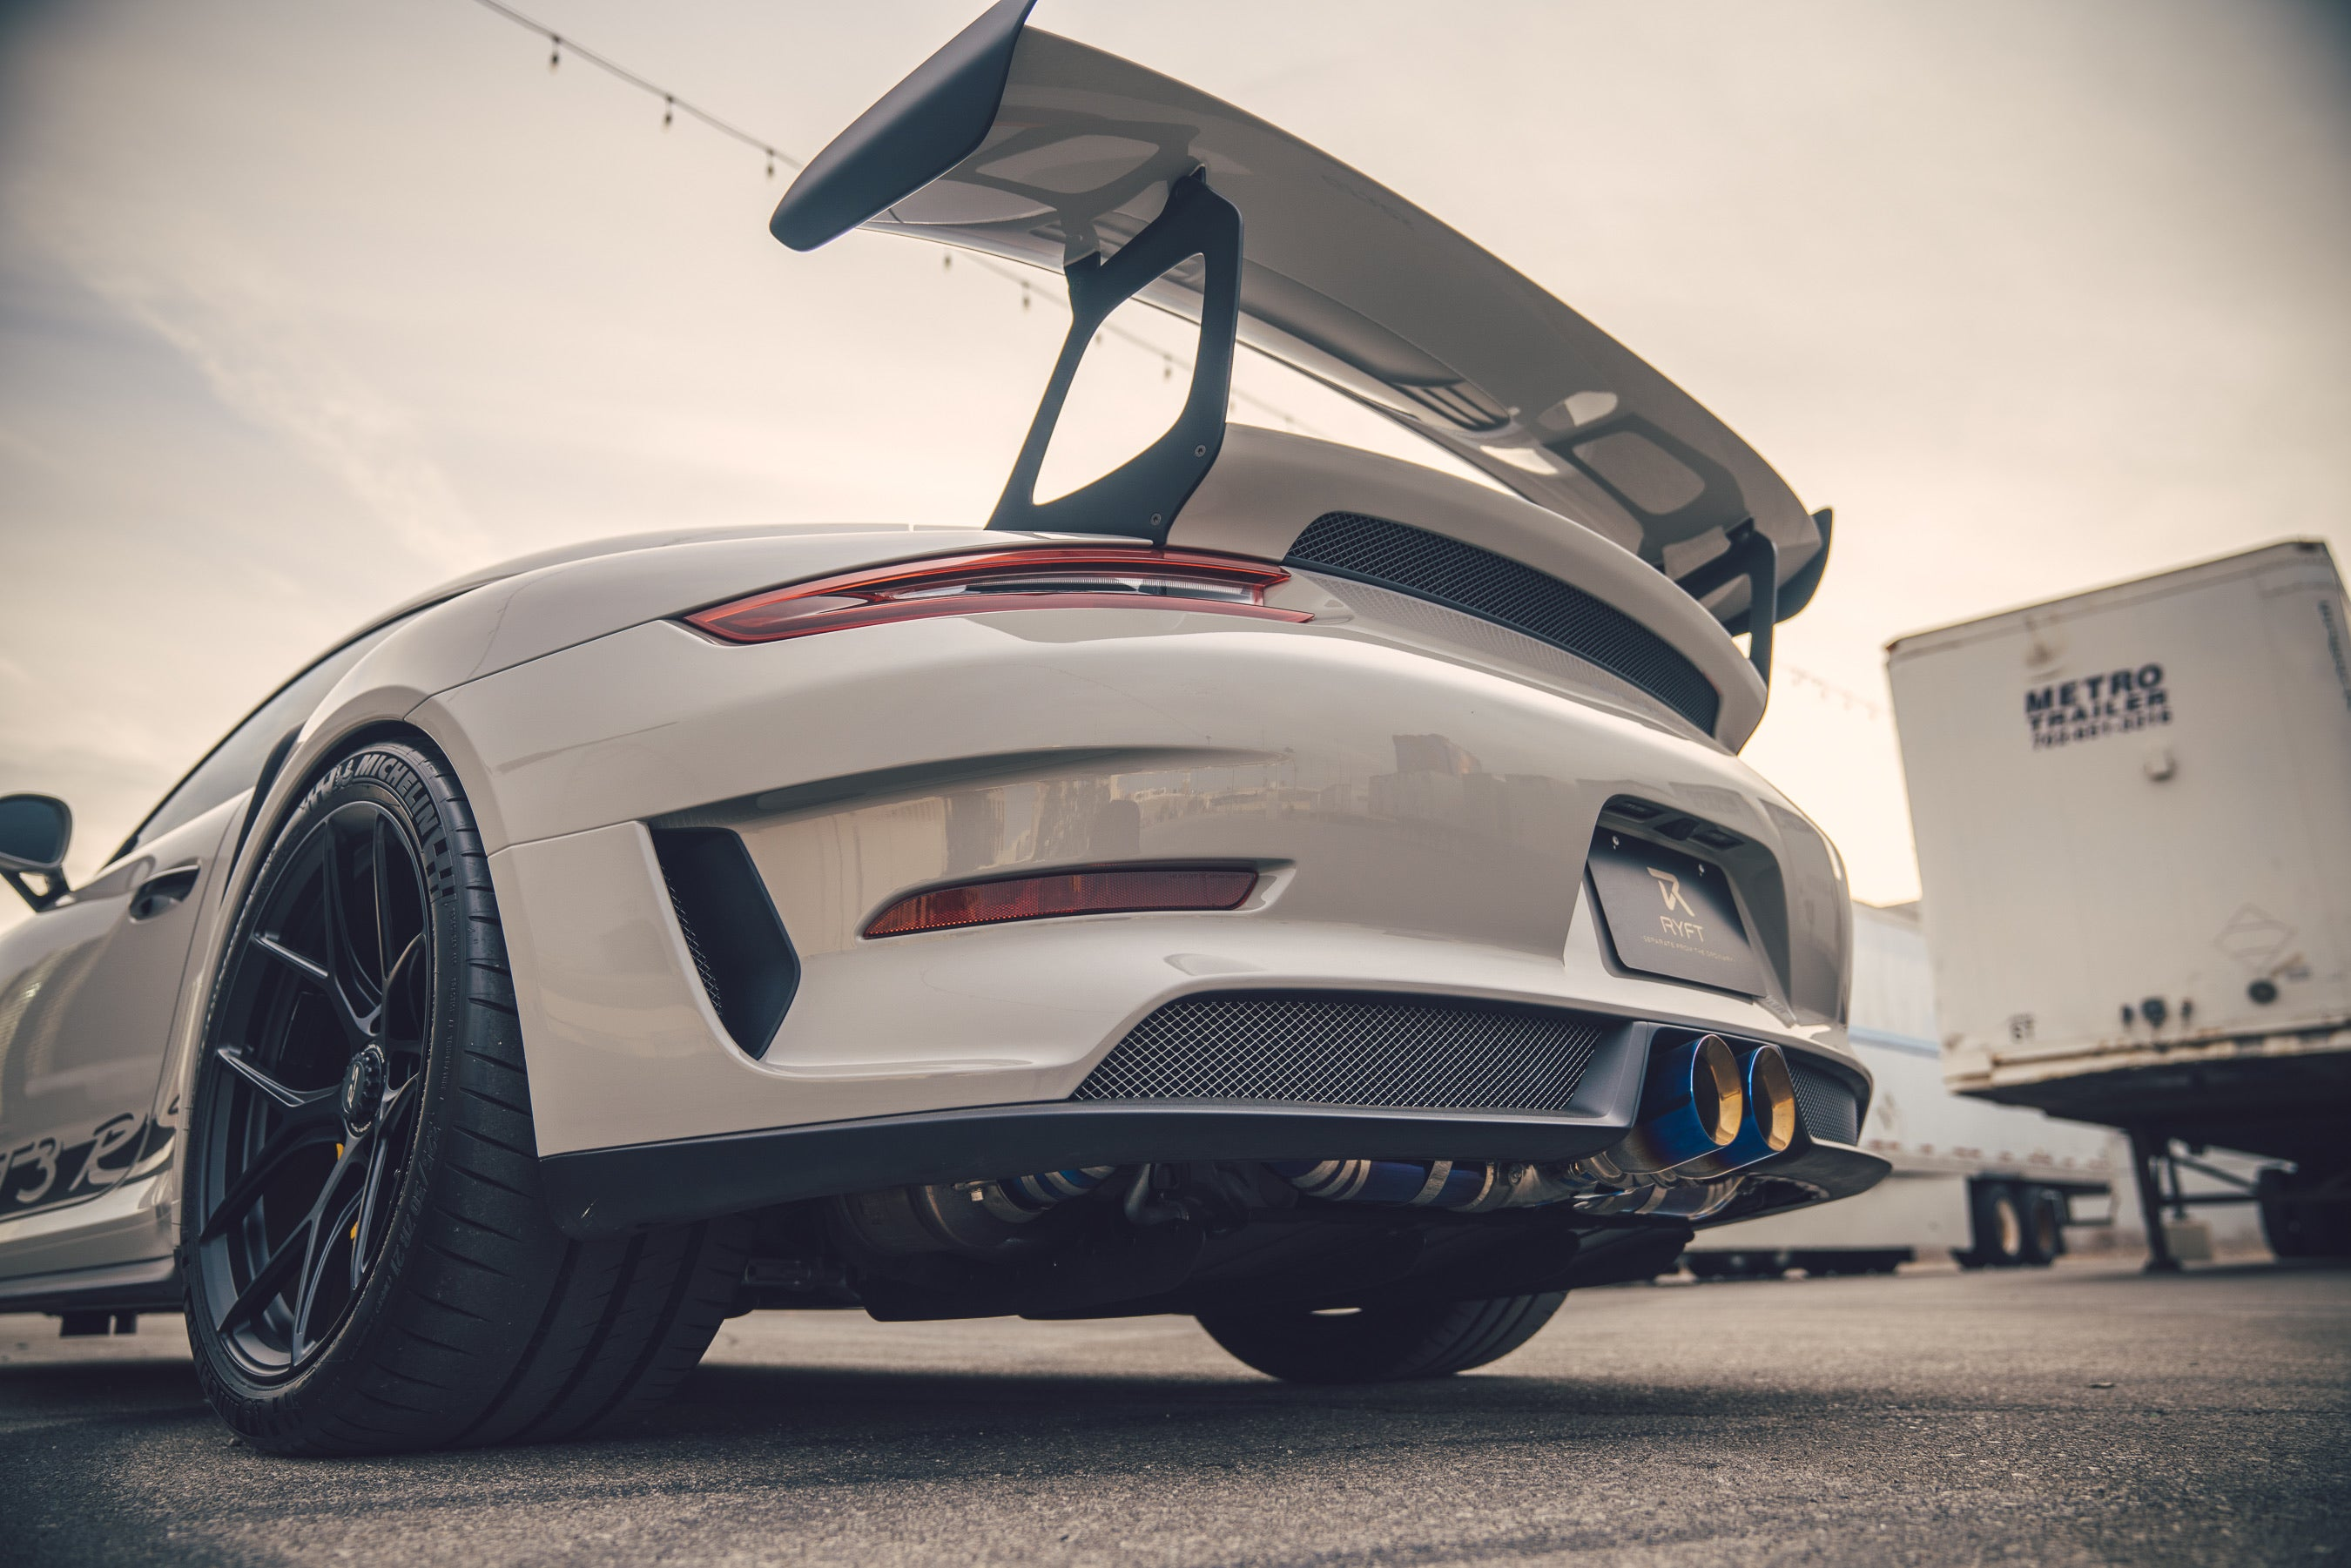 RYFT PORSCHE 991.1/2 GT3 RS TITAN FINAL PERFORMANCE ABGASANLAGE - Boden Visuals